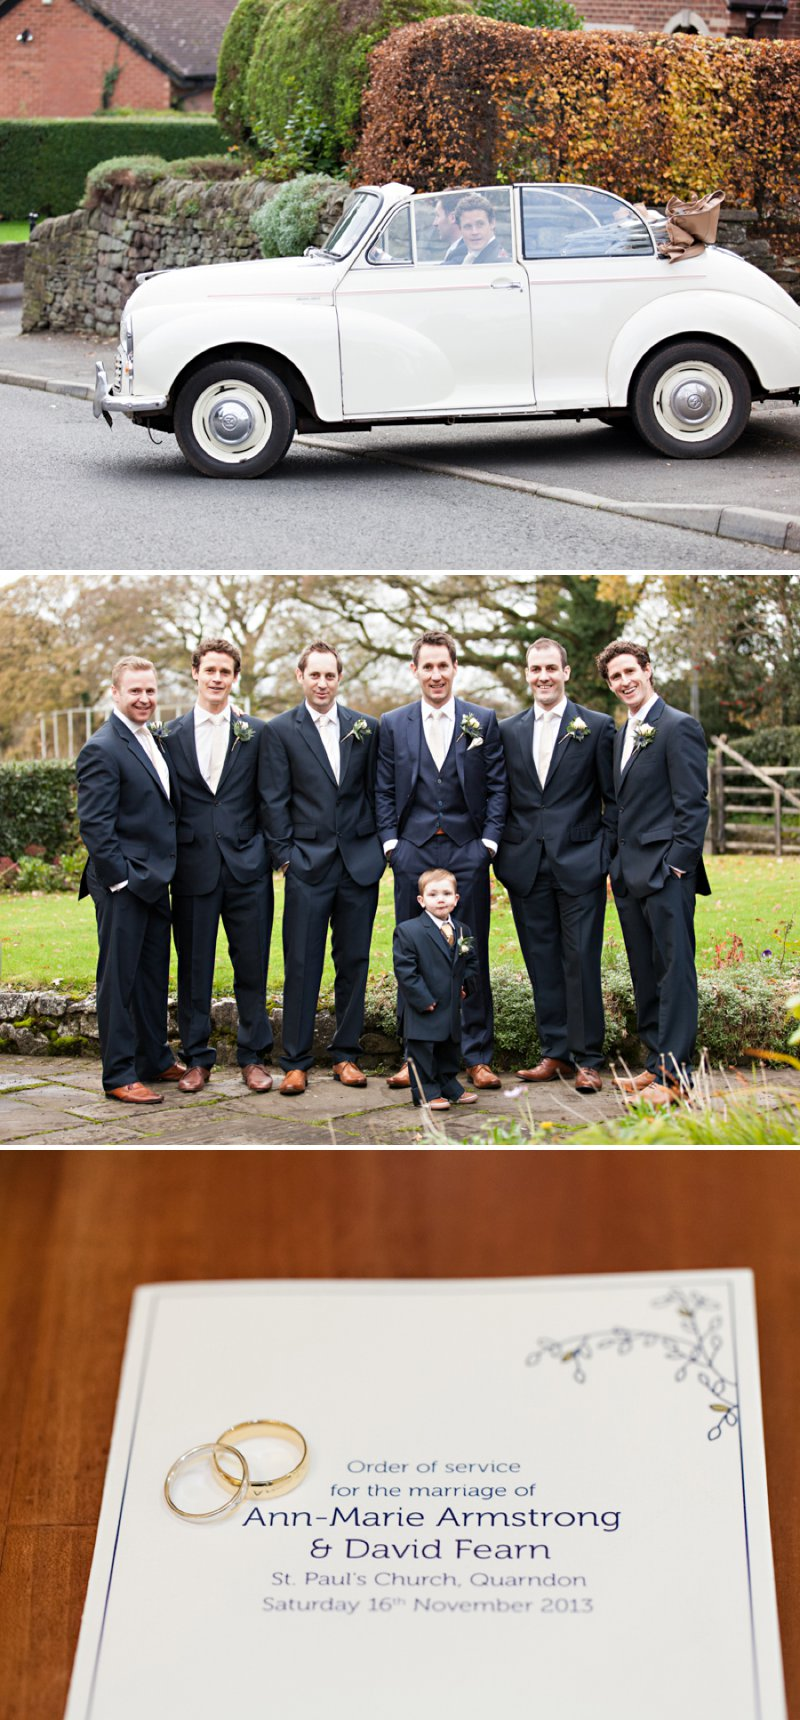 Elegant Vintage Inspired Wedding At Shottle Hall In Derbyshire With Bride In Essense Of Australia Gown With Miu Miu Shoes And Groom In Ted Baker Suit With A Vintage Jaguar Car 3